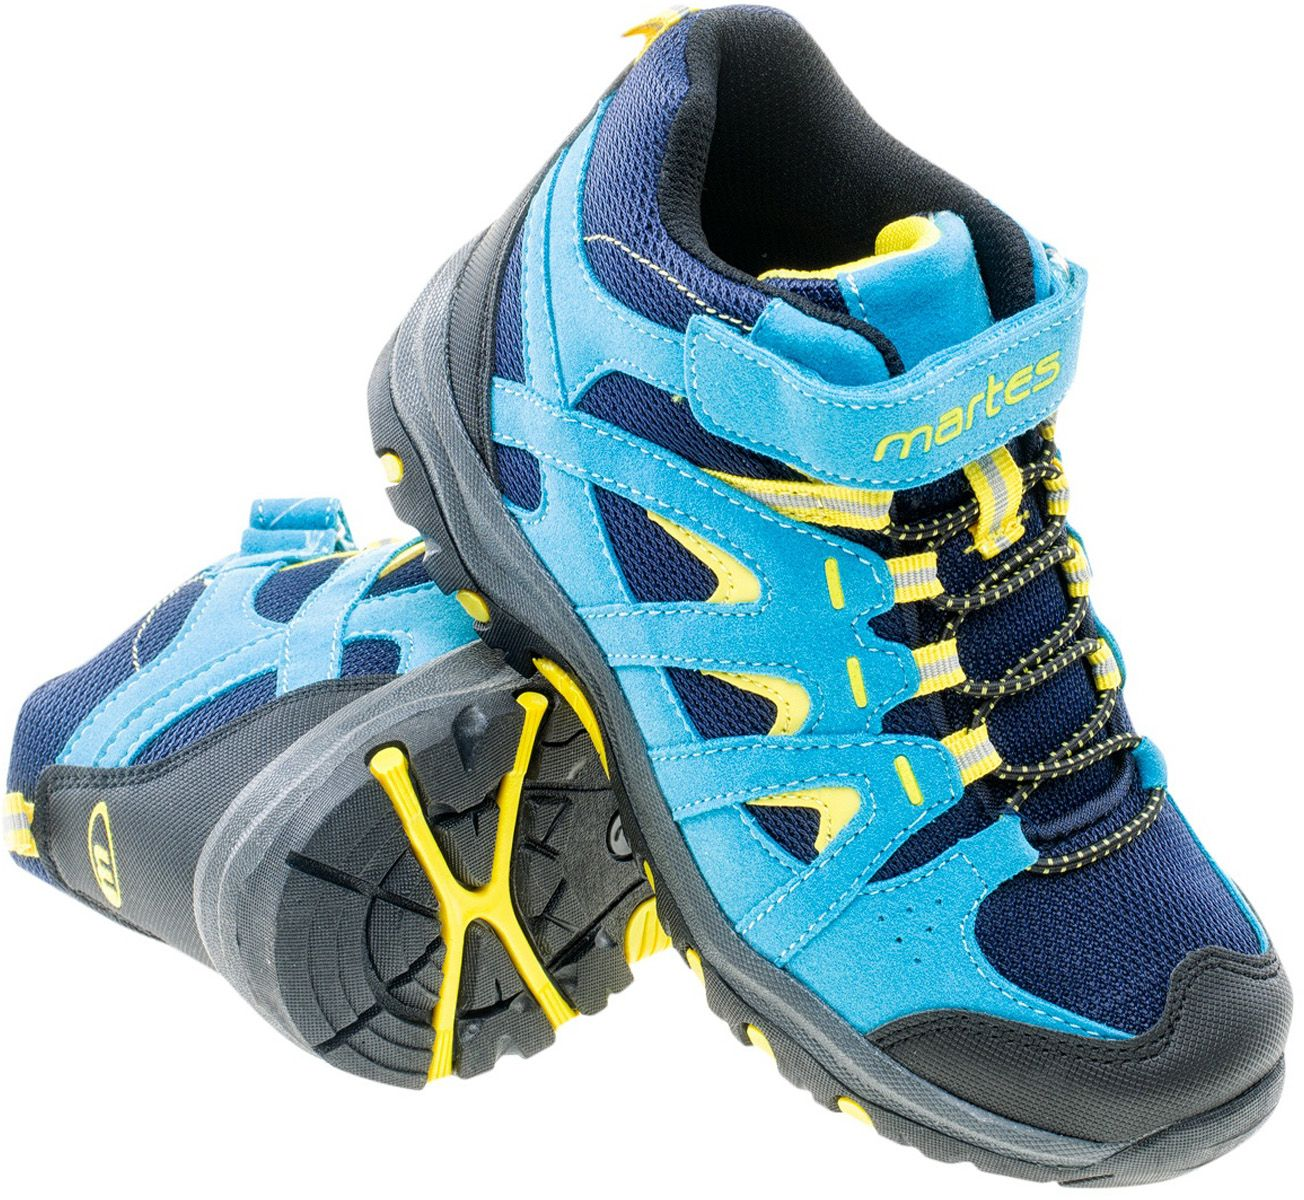 Buty dziecięce DUNLAND MID JR NAVY/LIGHT BLUE/LIME YELLOW roz. 30